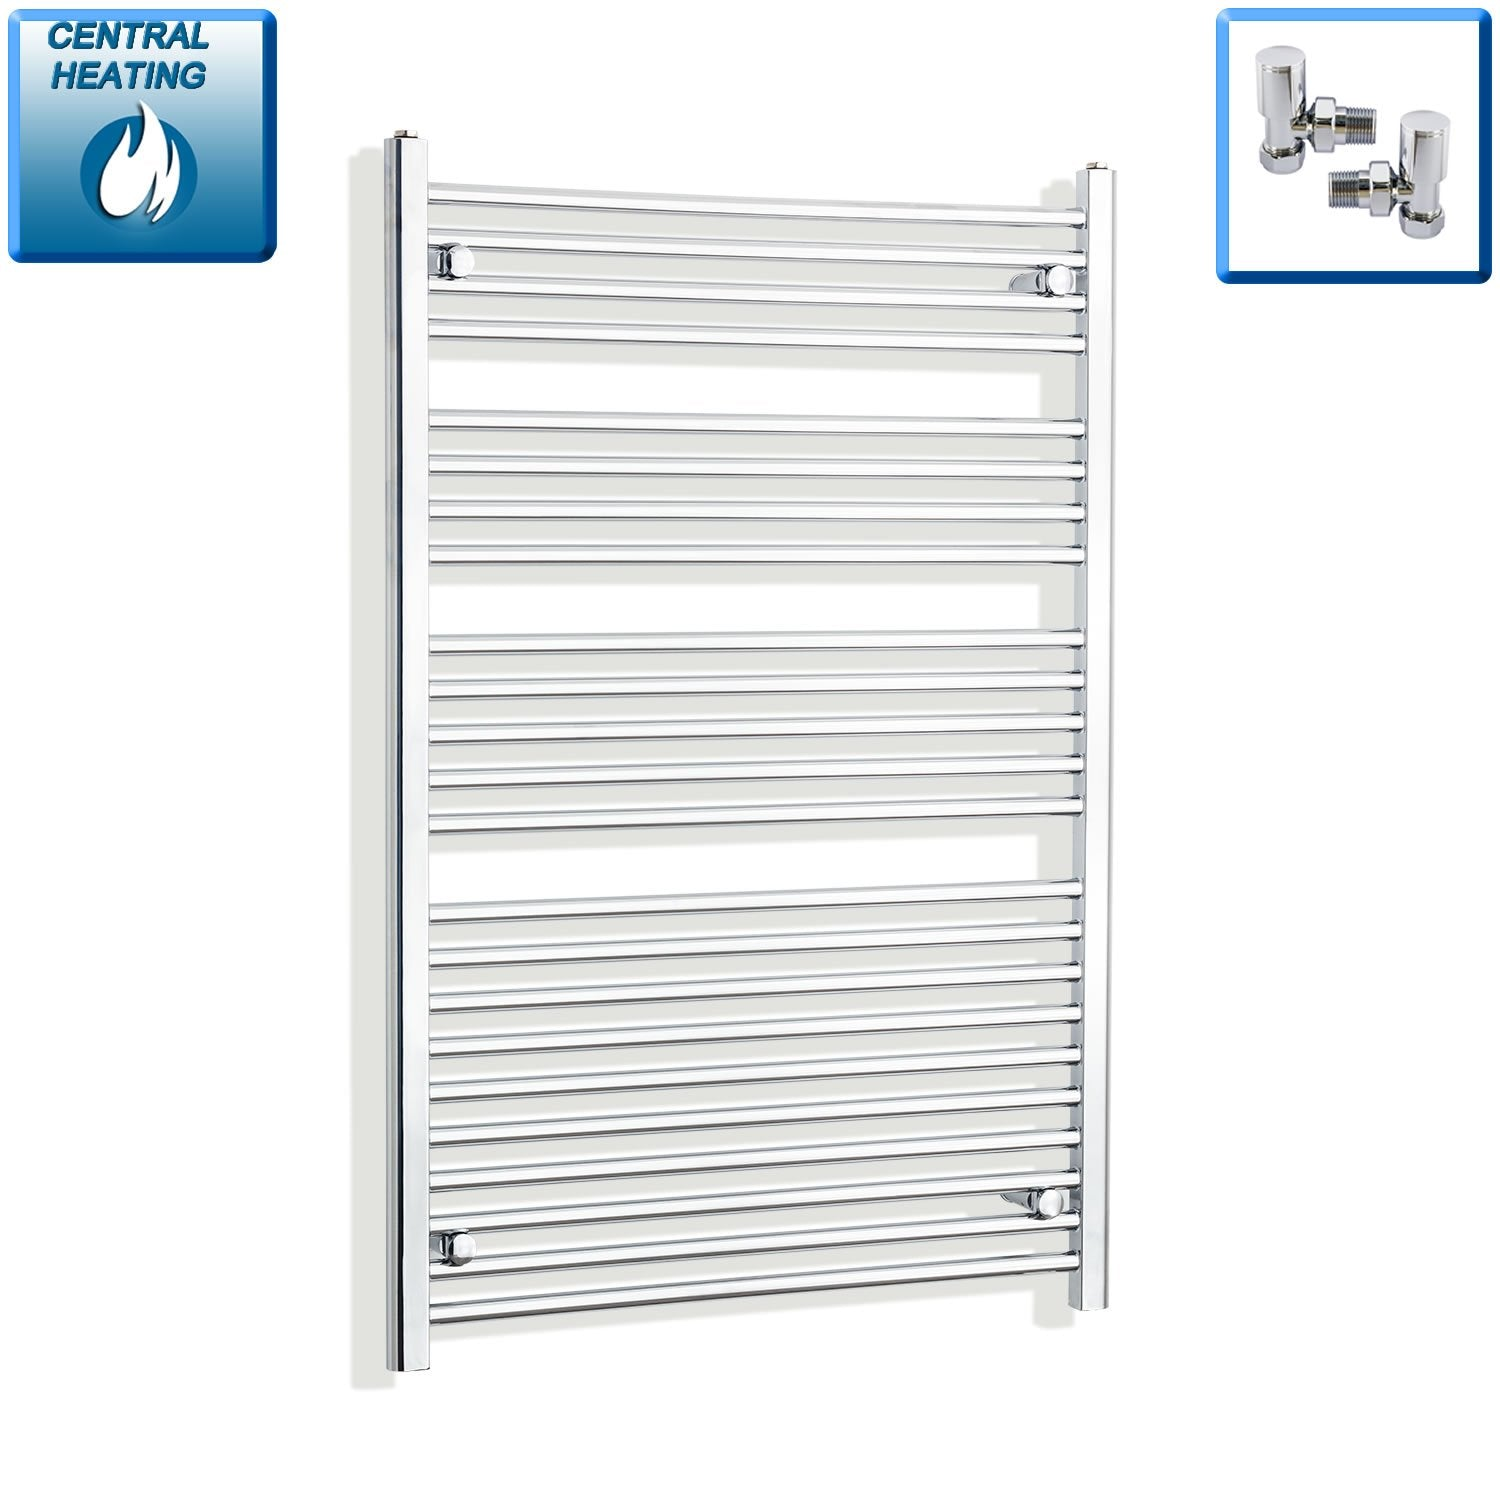 800mm Wide 1200mm High Flat Chrome Heated Towel Rail Radiator HTR,With Angled Valve